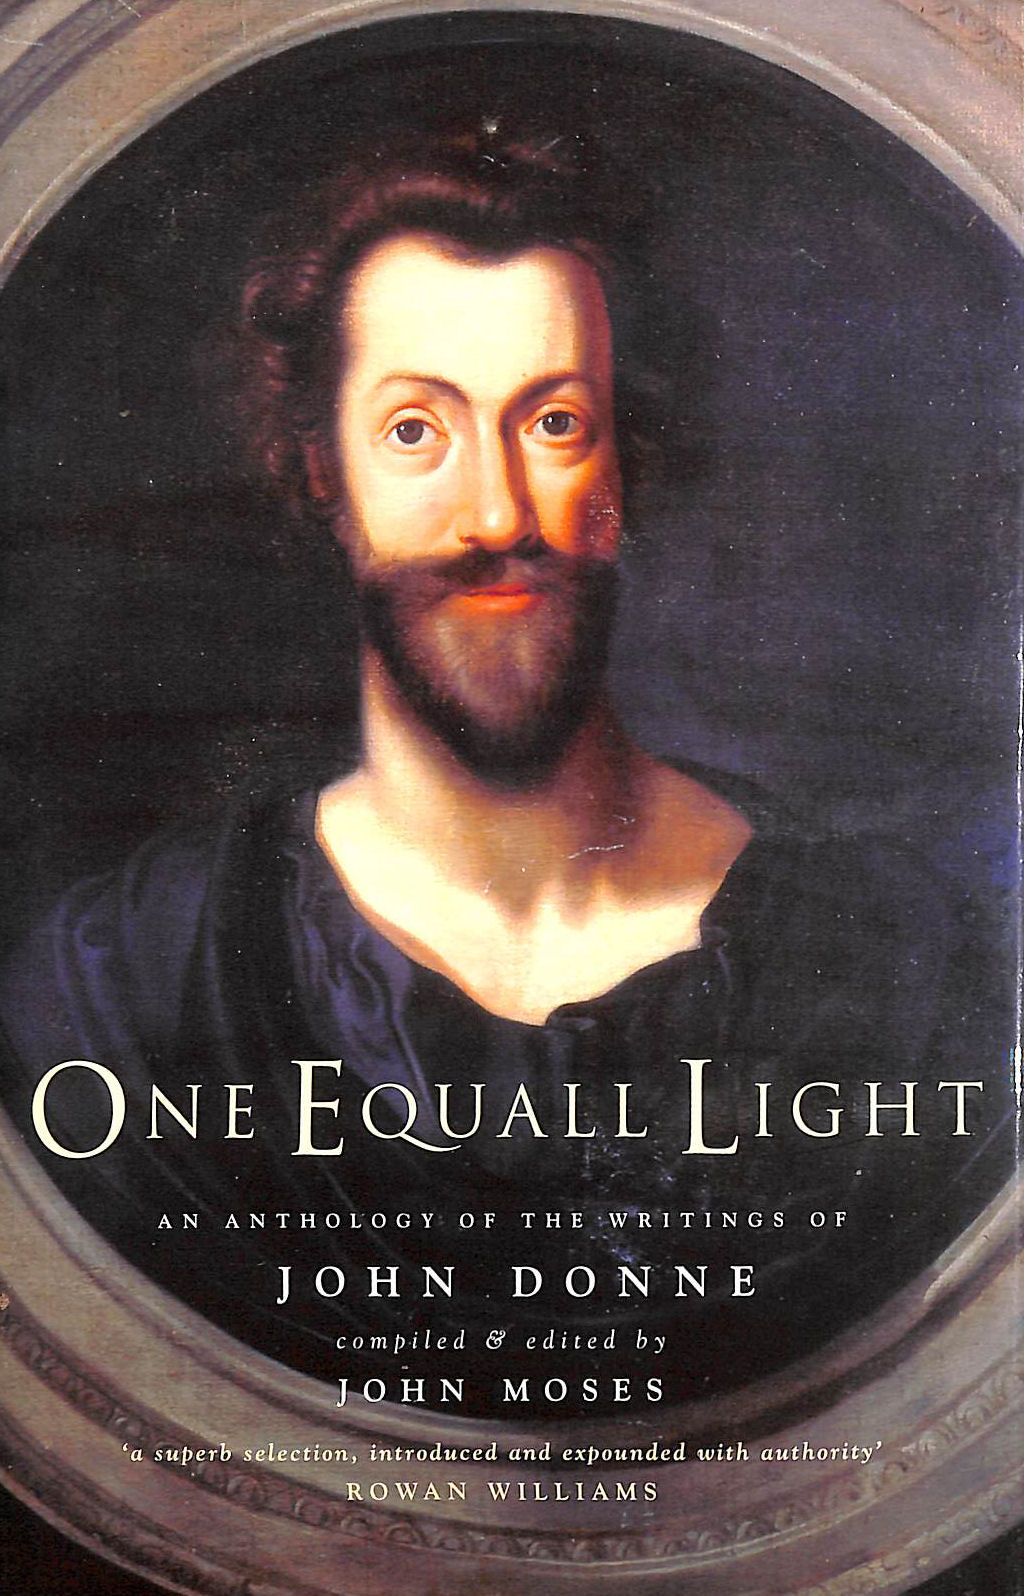 Image for One Equall Light: An Anthology of the Writings of John Donne